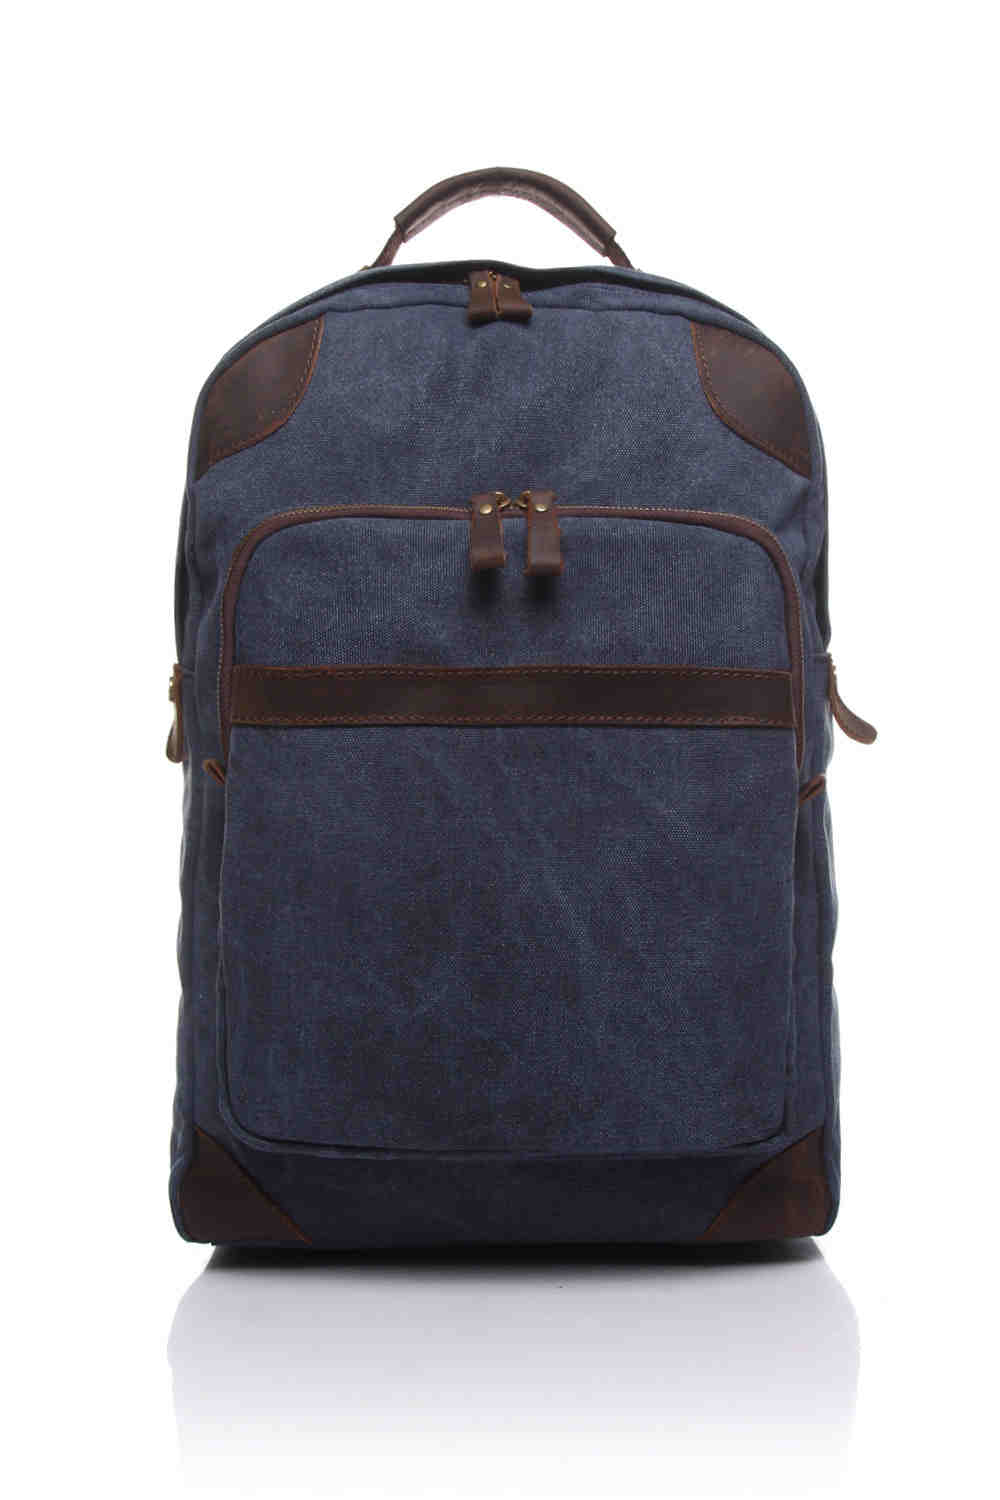 Vintage Men Women Canvas Backpacks School Bags Teenagers Boys Girls Large Capacity Backpack Fashion Men Backpack